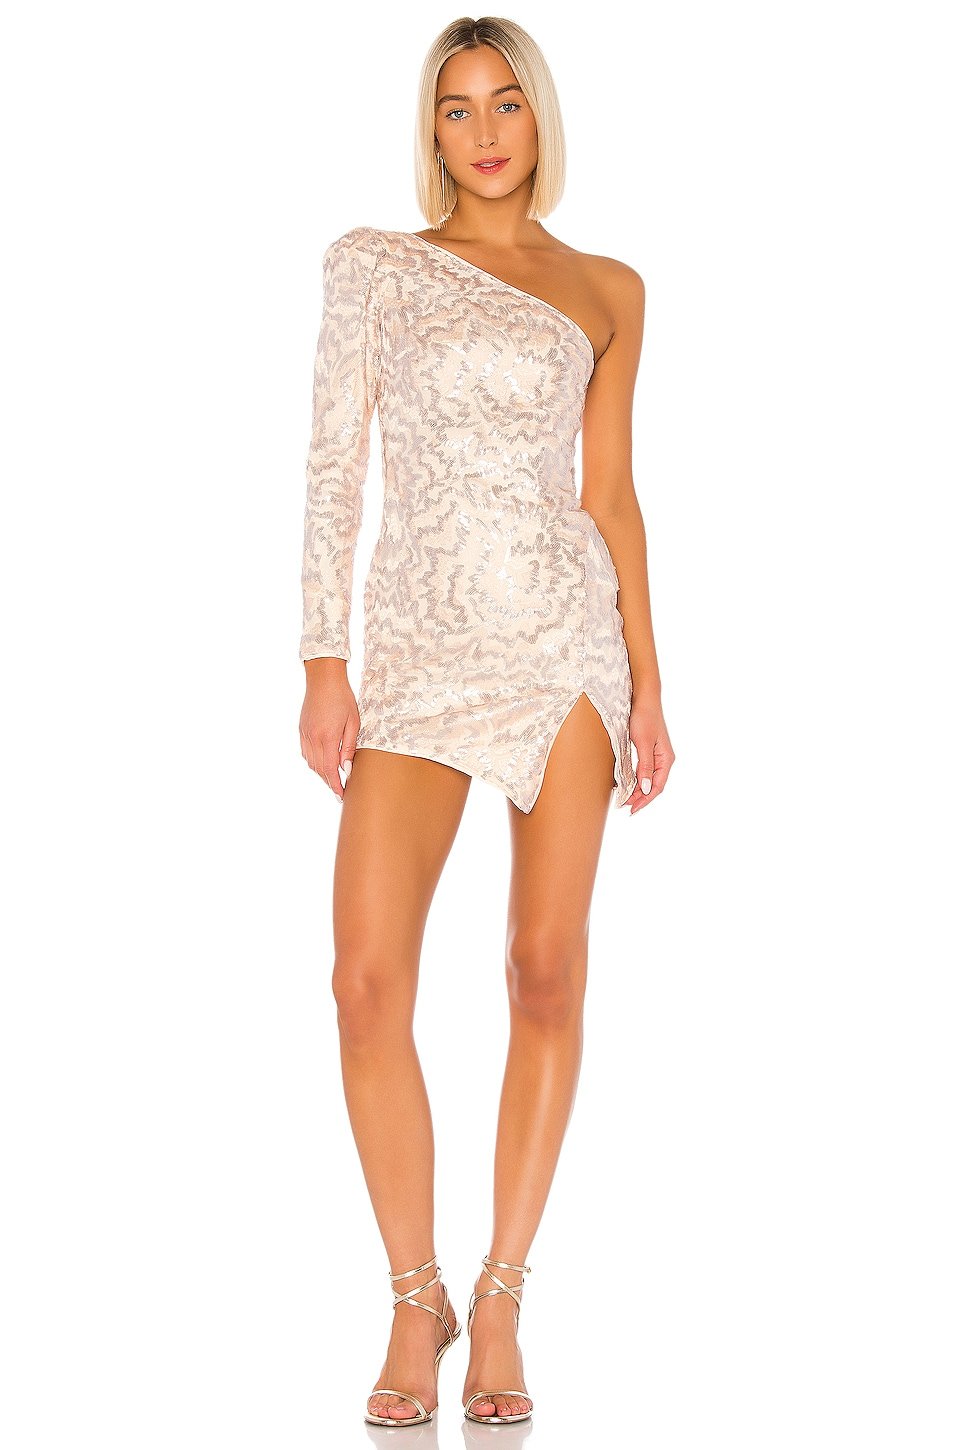 Michael Costello x REVOLVE Fabian Mini Dress in Light Pink